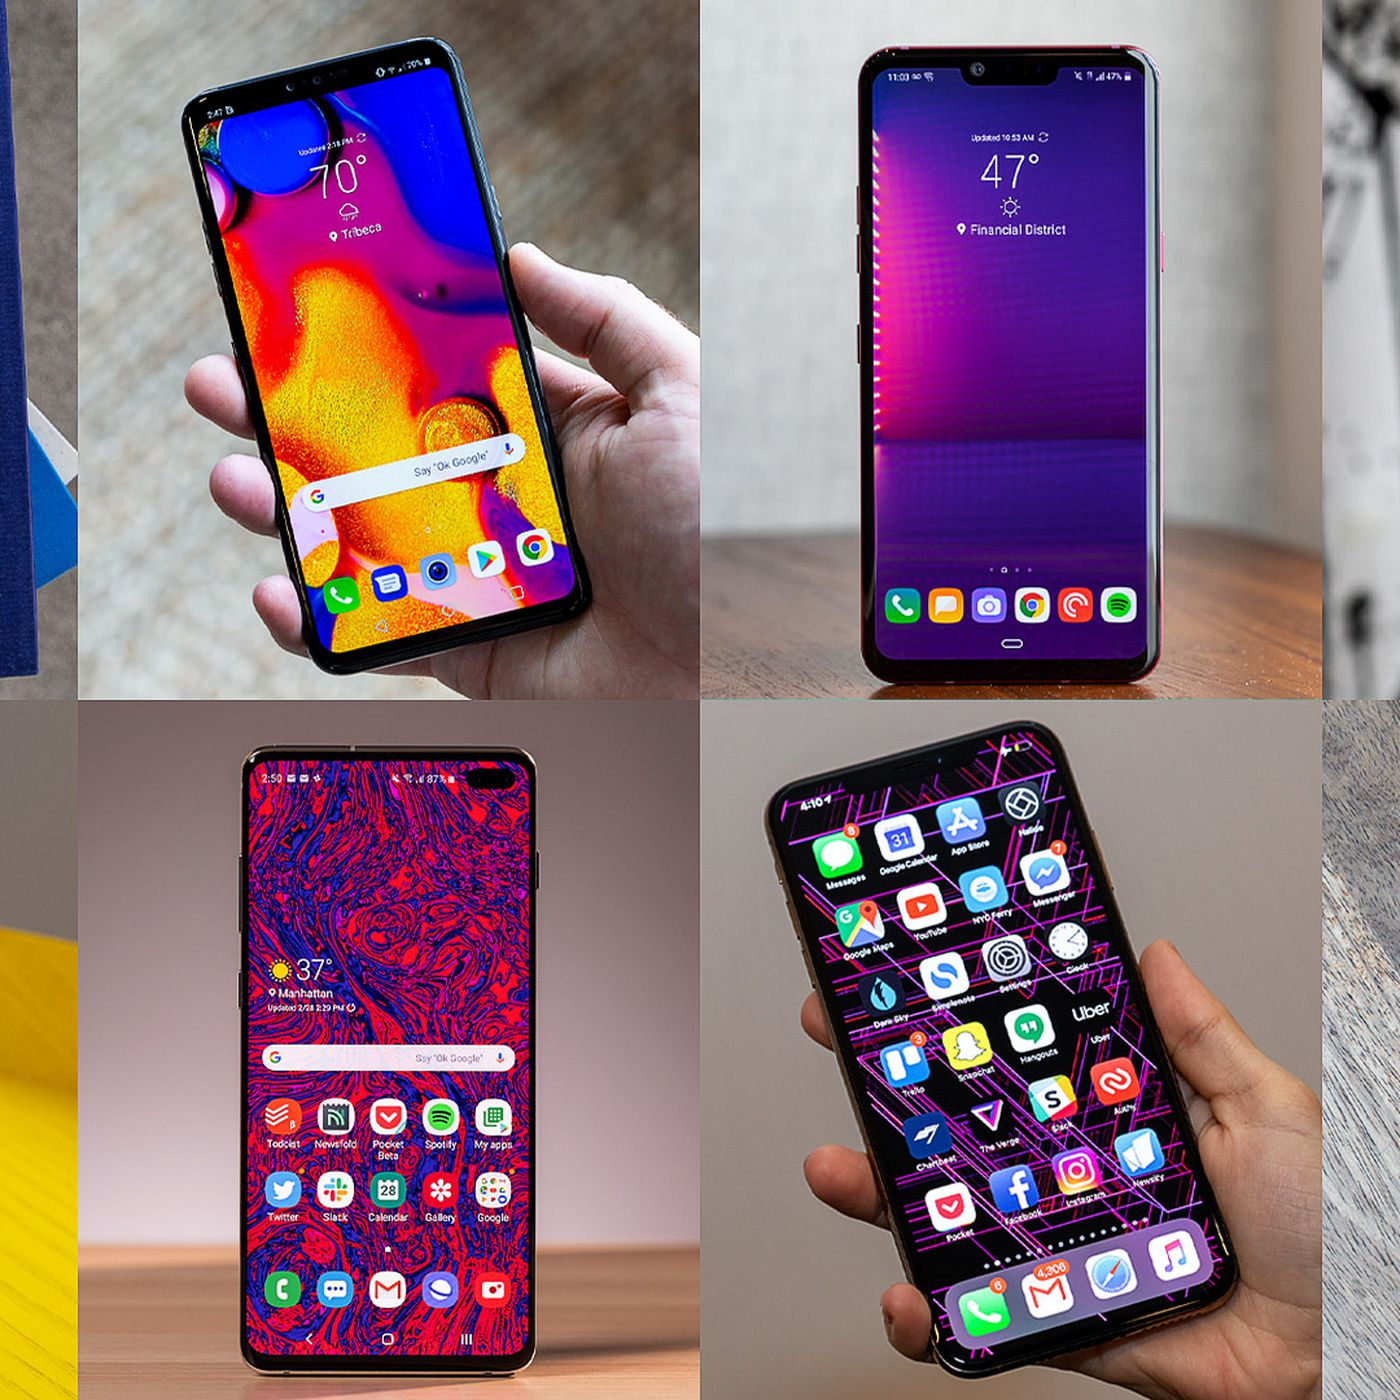 The best phone to buy right now (2019) - The Verge